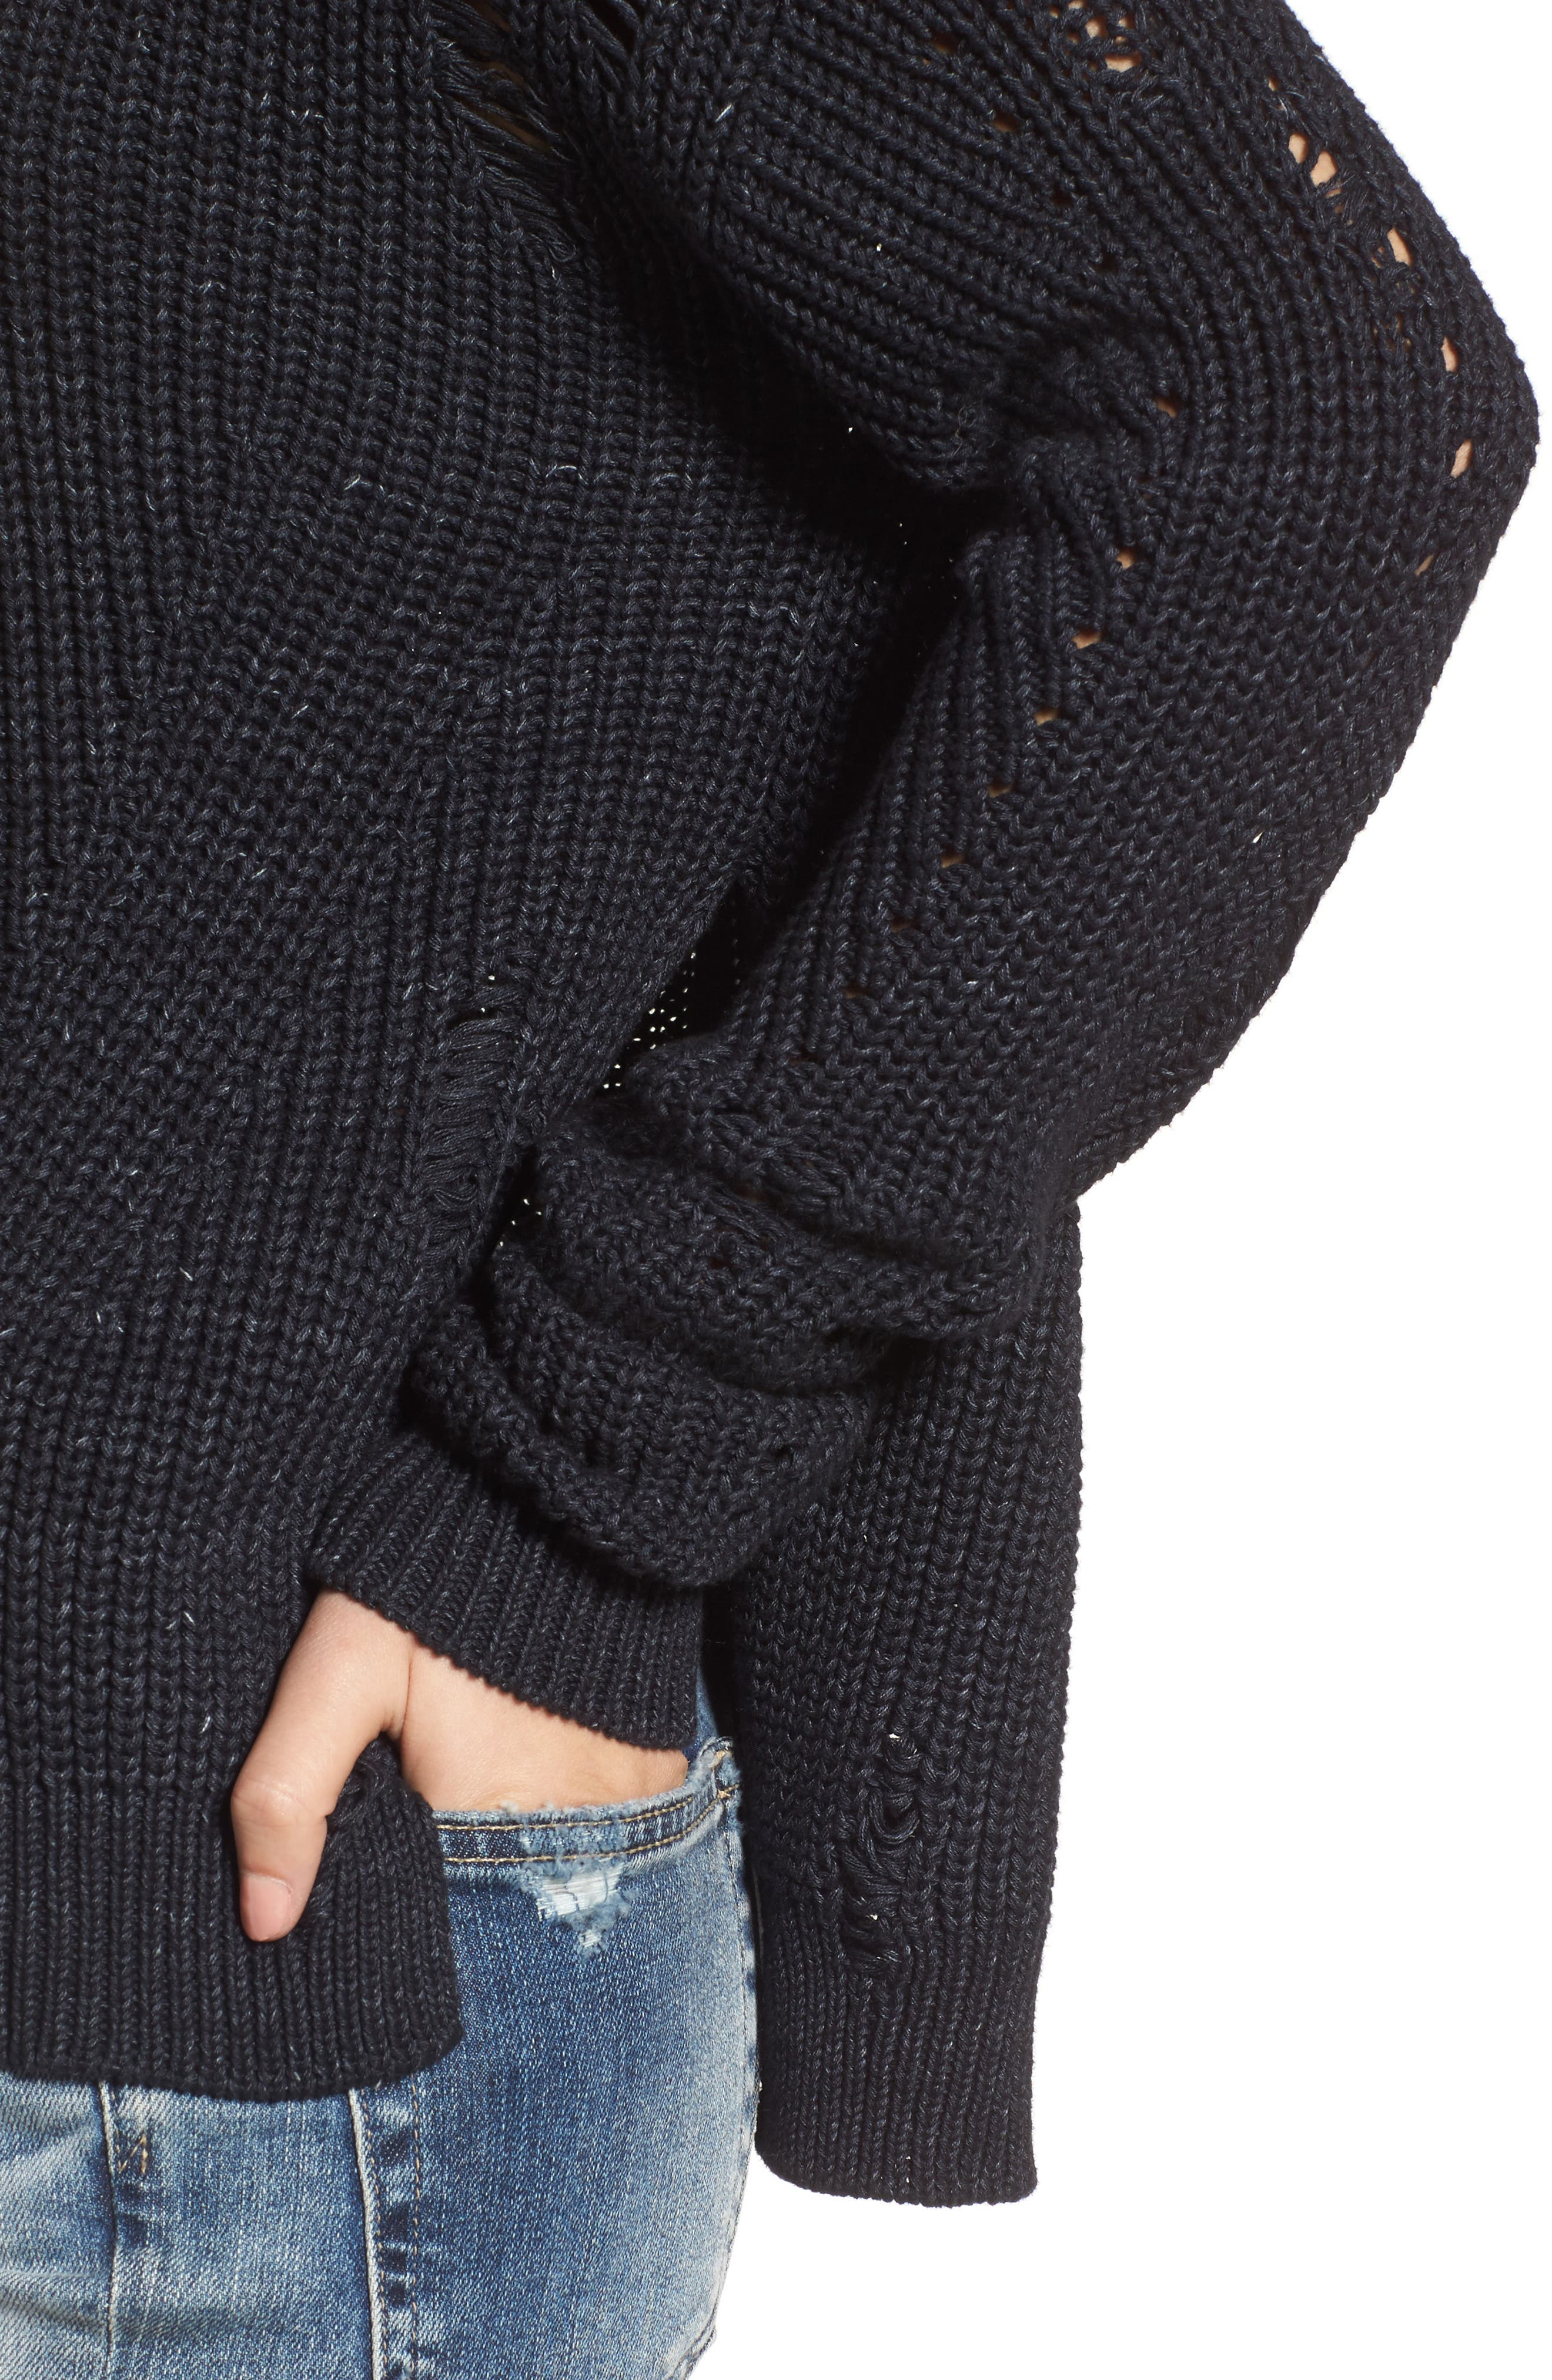 Finn Distressed Sweater,                             Alternate thumbnail 4, color,                             SPECKLED MIDNIGHT SKY